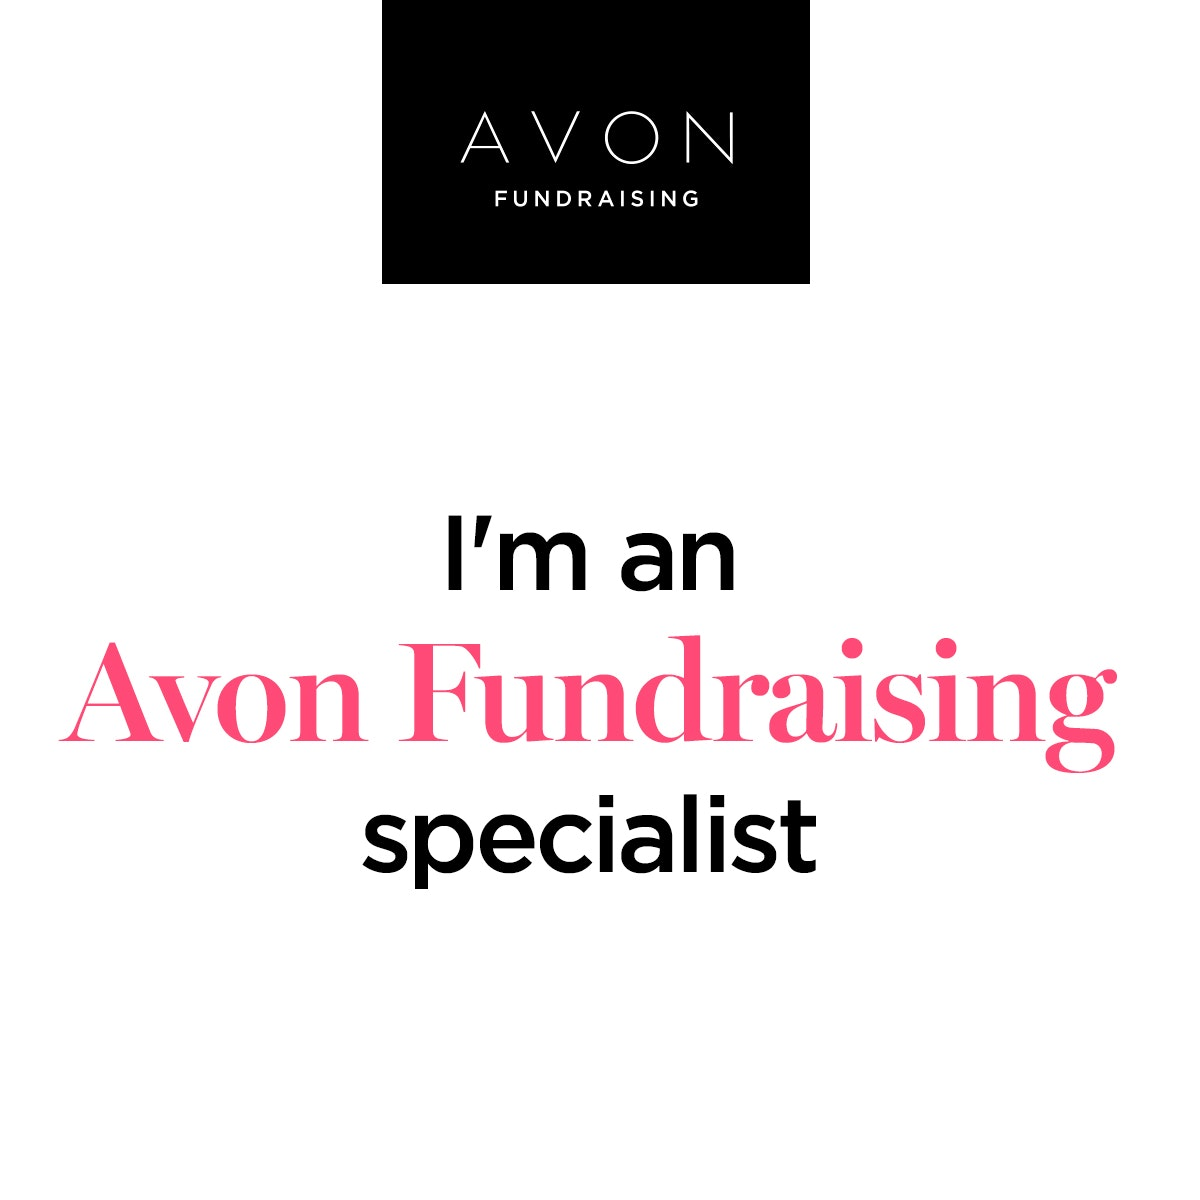 I'm an Avon Fundraising Specialist